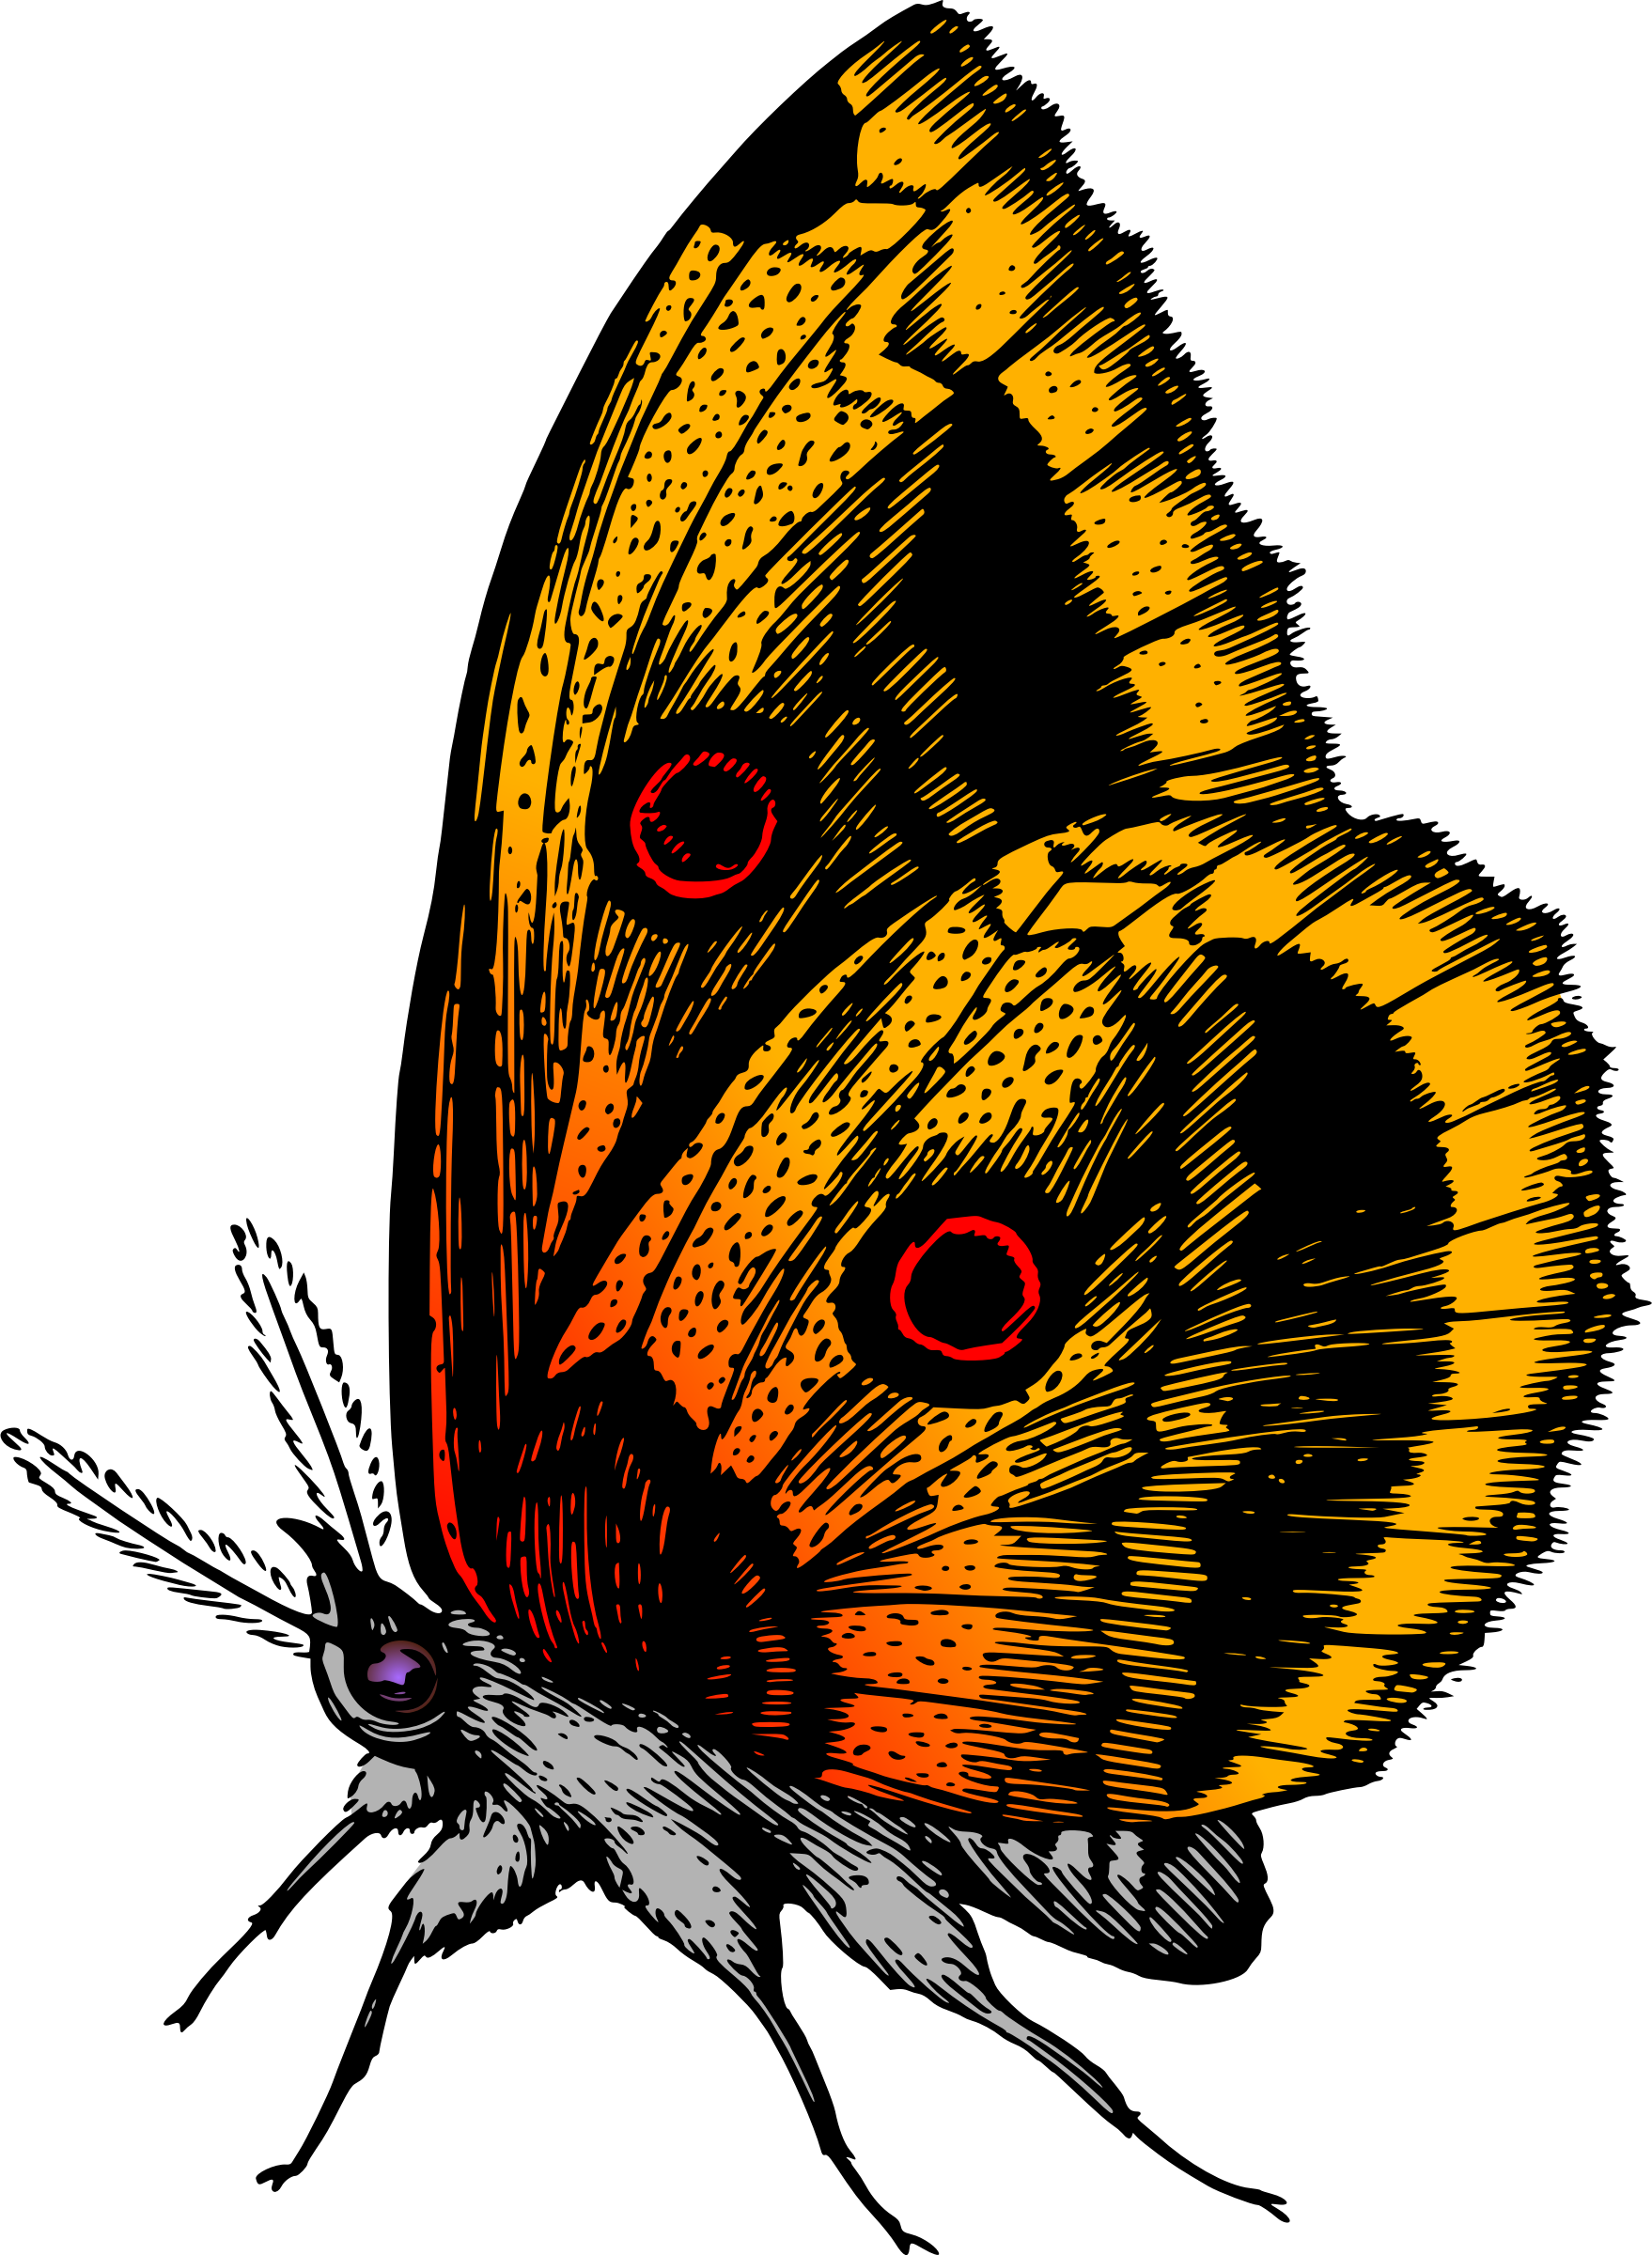 Butterfly 18 (colour) by Firkin